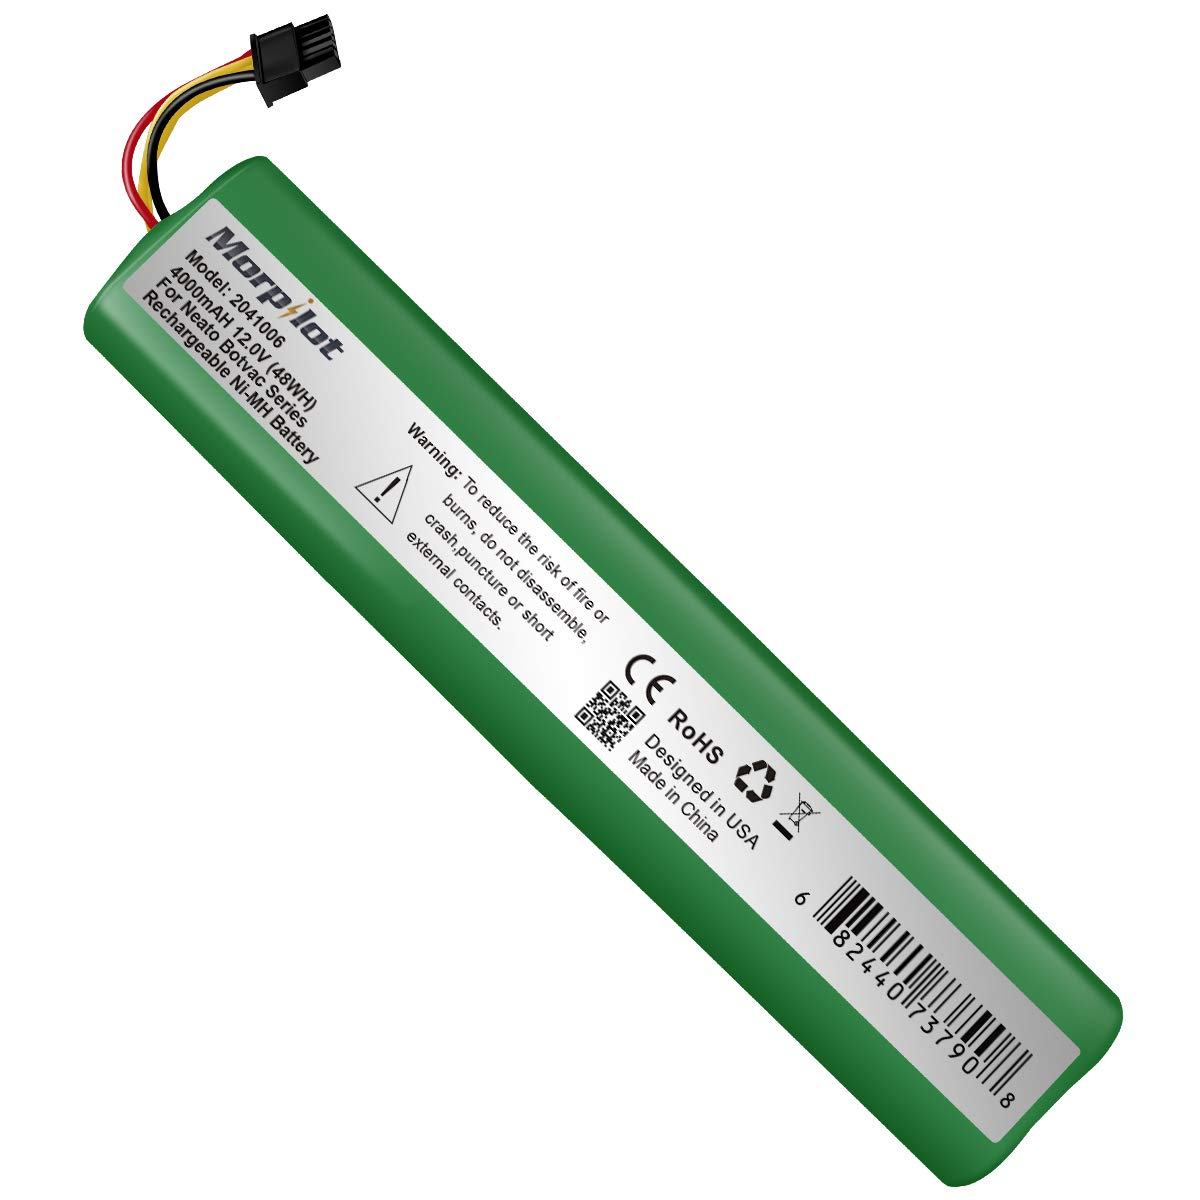 Keenstone 4000mAh 12VNiMh Replacement Battery for Neato BotvacSeries 70e, 75, 80, 85 and Botvac D Series D75, D80, D85 (Not Compatible with Neato D3 D5 D7)